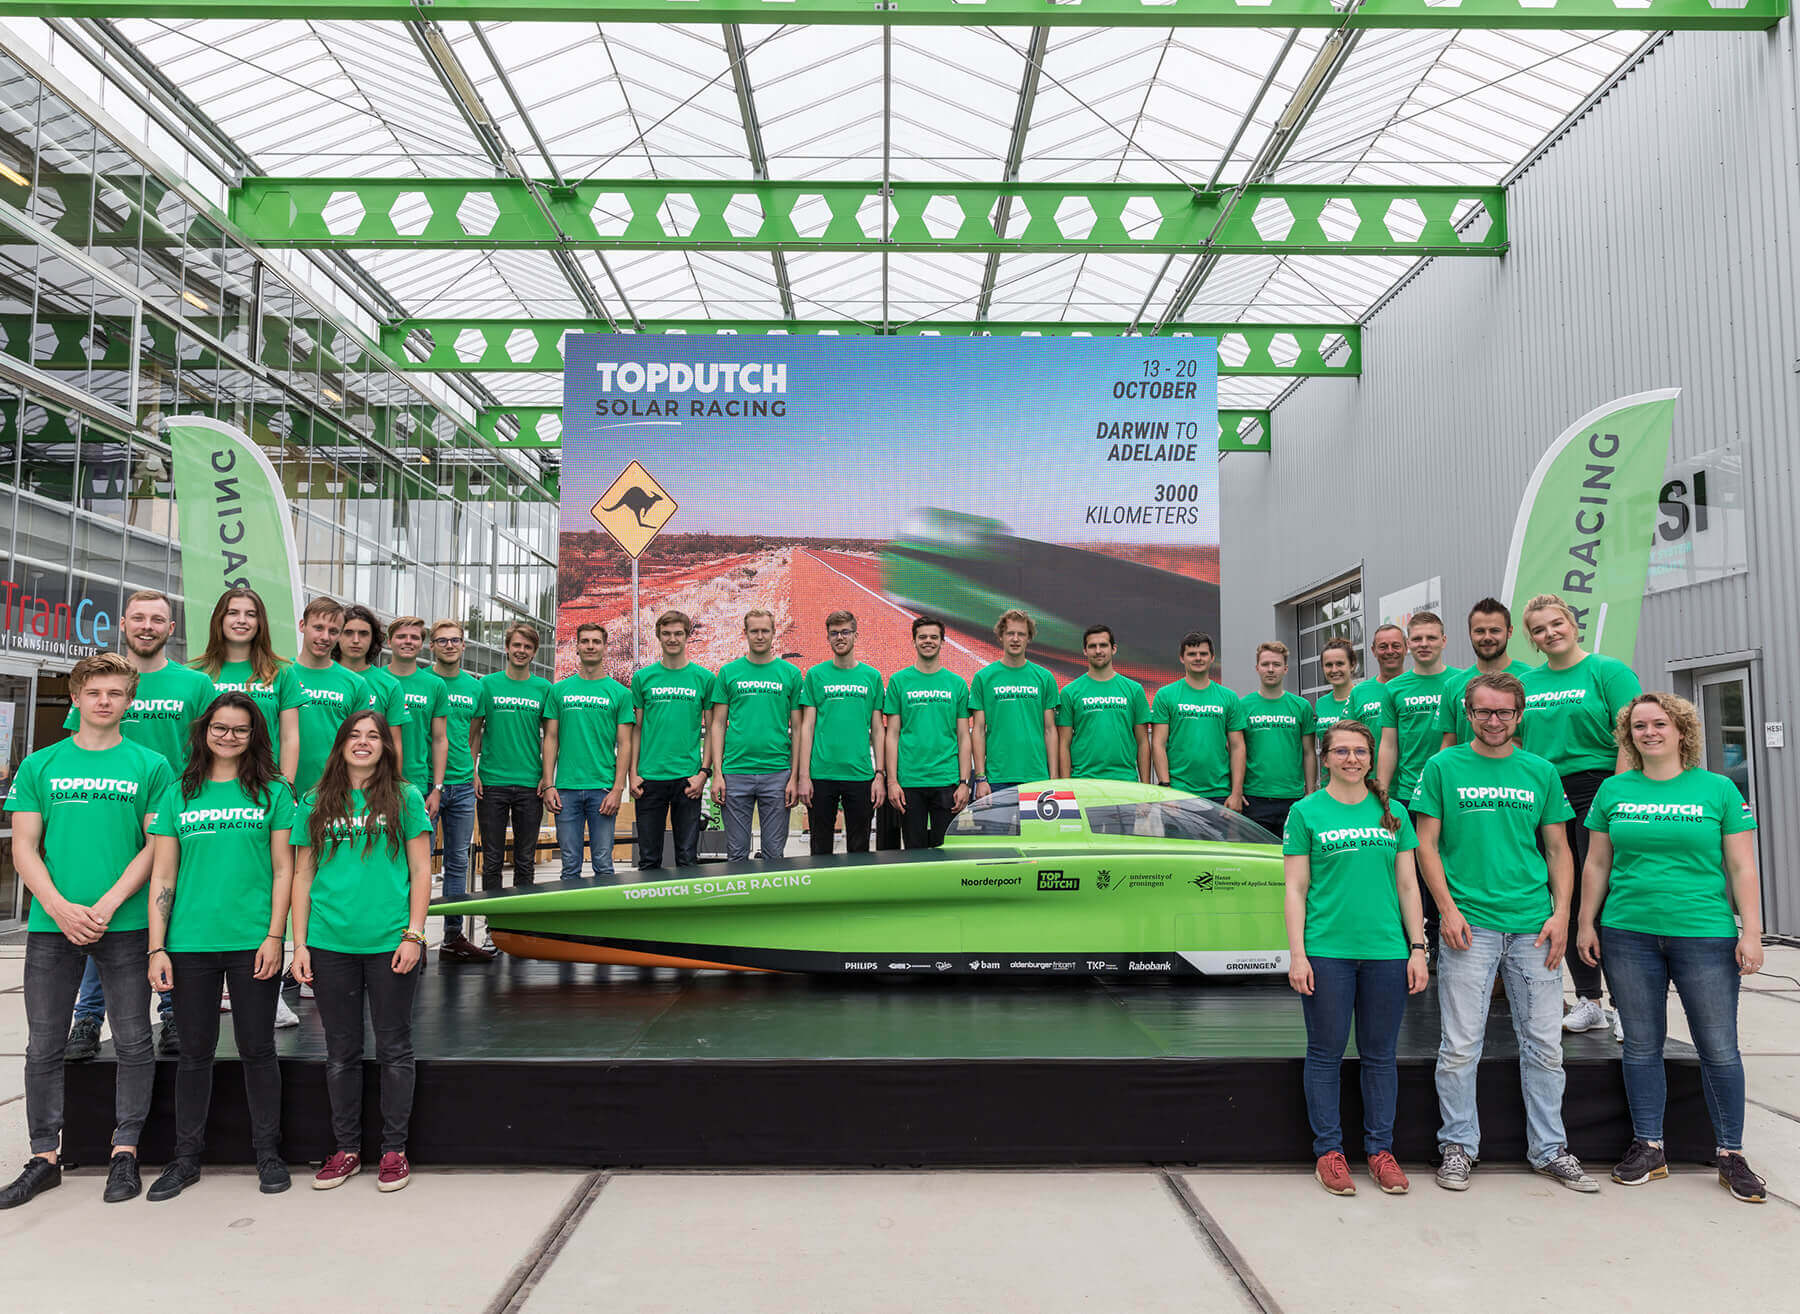 Onthulling zonneauto Top Dutch Solar team